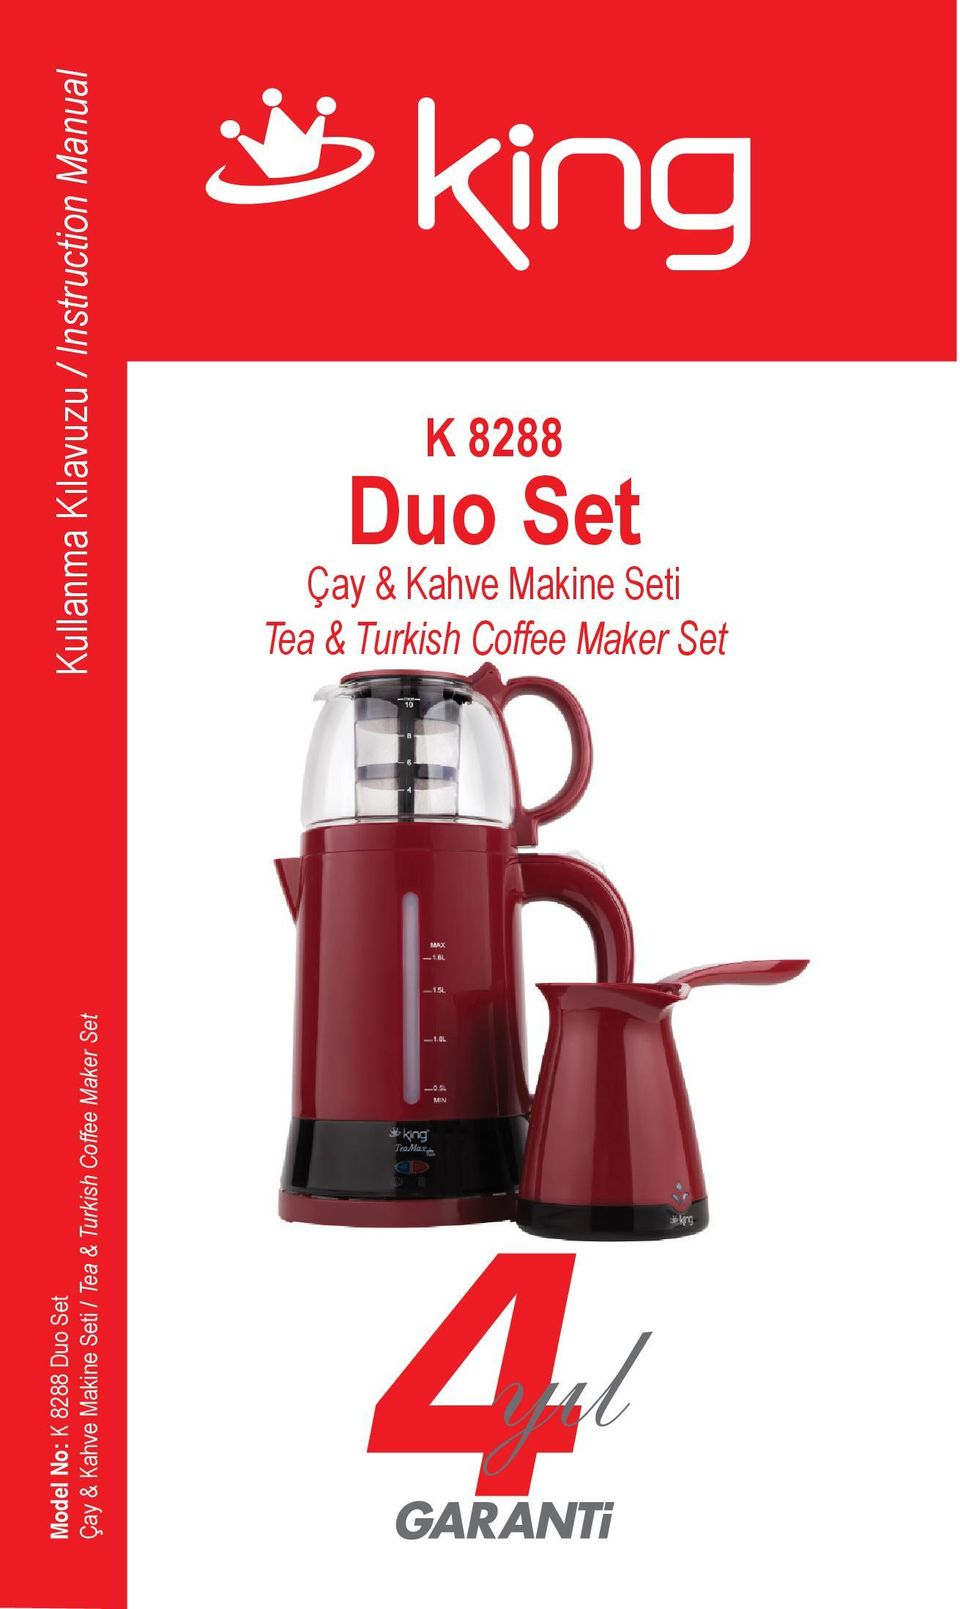 Kılavuzu / Instruction Manual K 8288 Duo Set